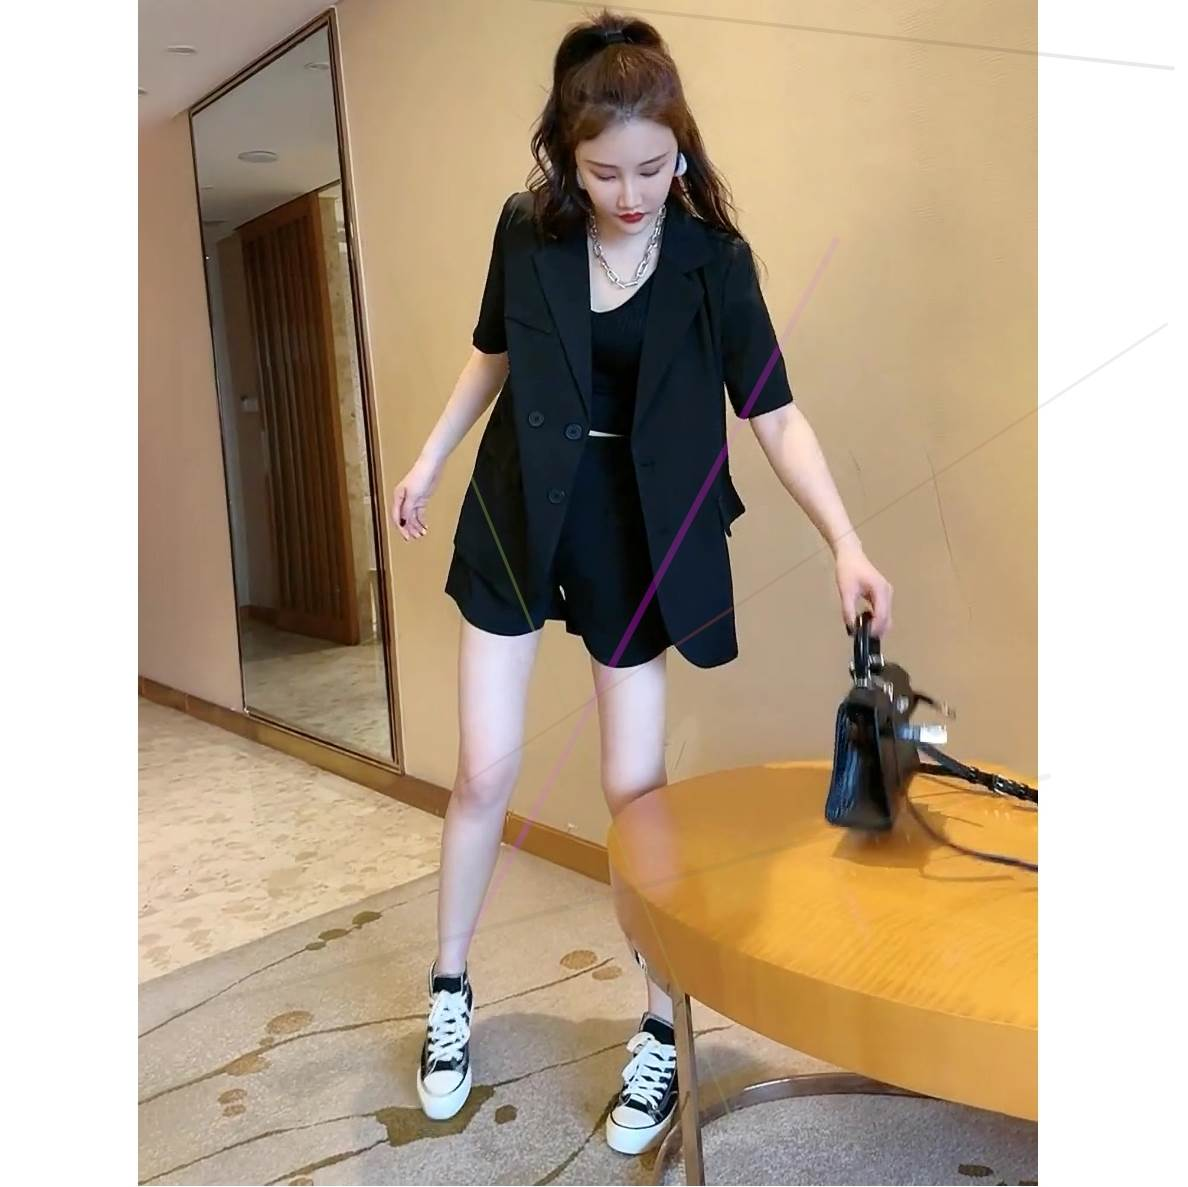 Summer new womens suit 2021 often simple suit Lapel short sleeve thin middle coat solid color wide cwov